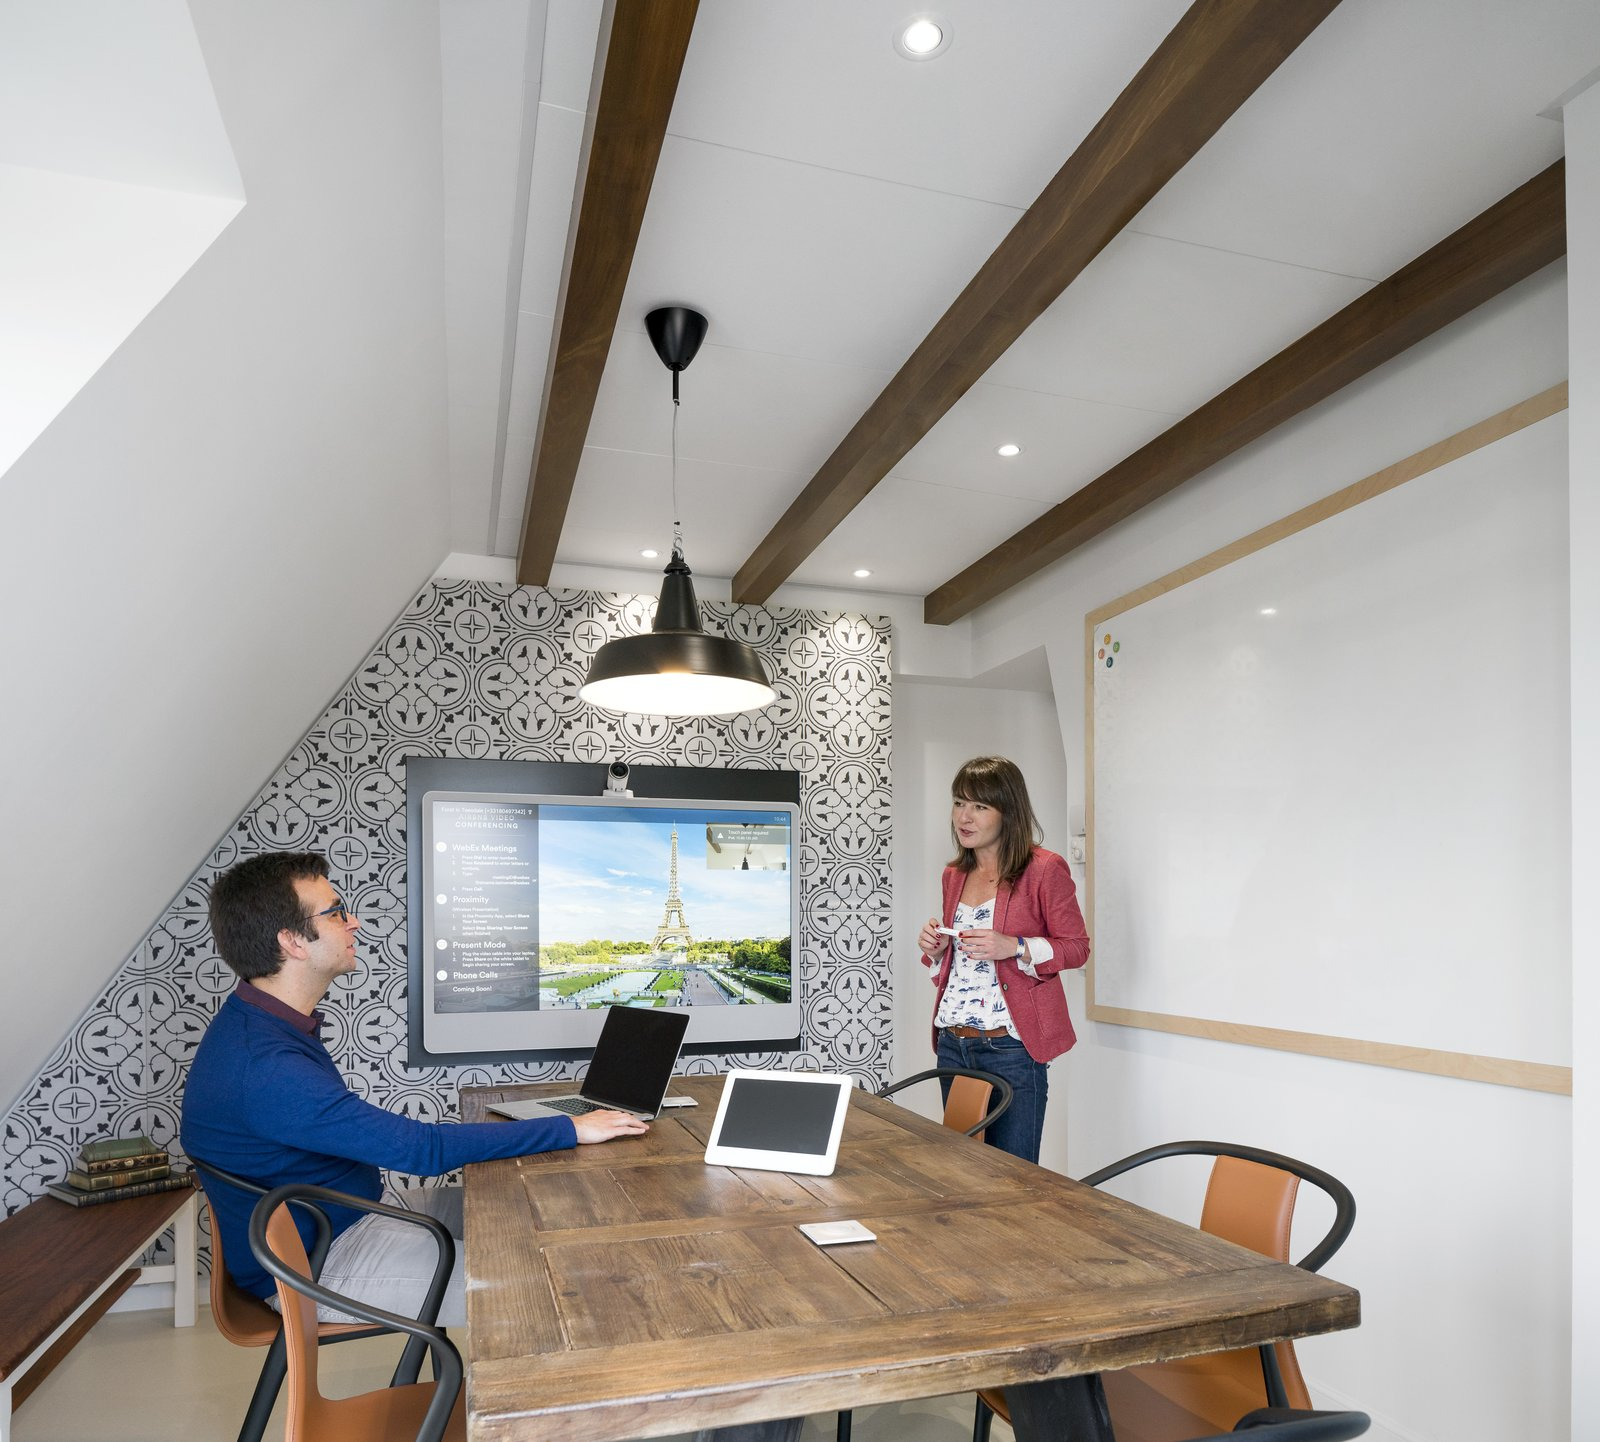 With a traditional mansard roof, a variety of levels and atypical corners, the office resembles a quaint attic loft synonymous with Parisian city architecture.